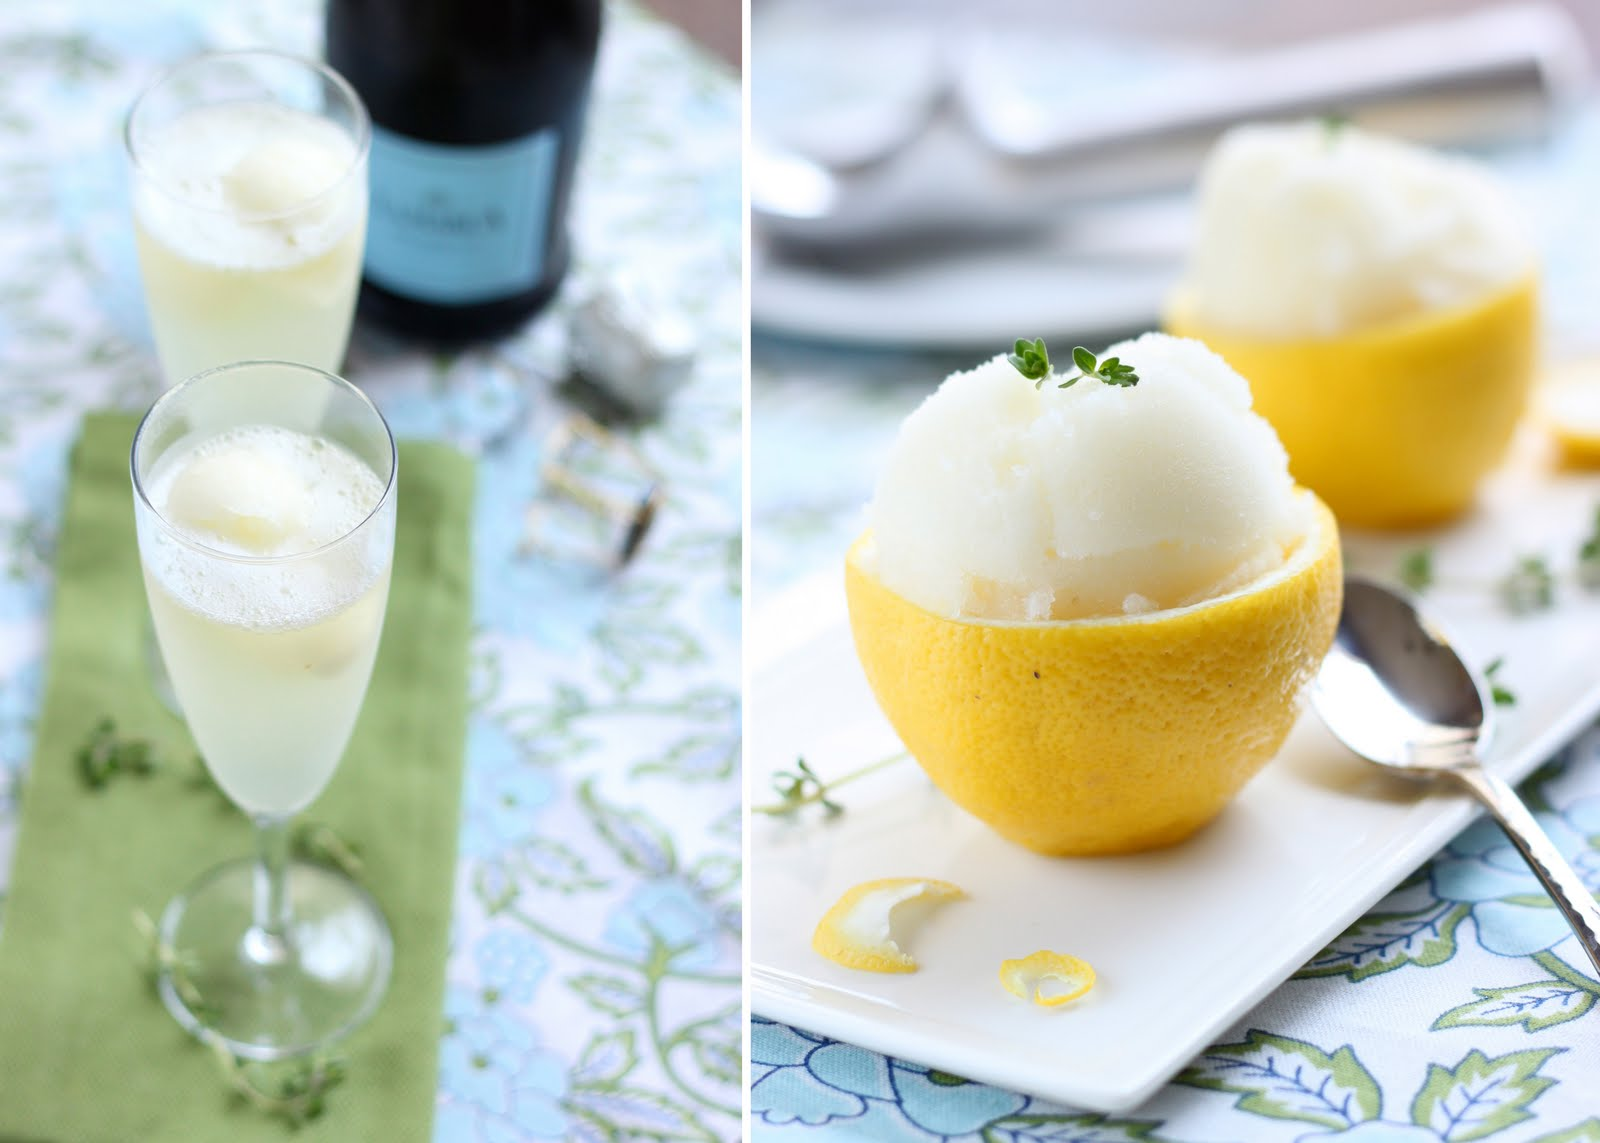 The Cilantropist: Sparkling Wine with Lemon Thyme Sorbet